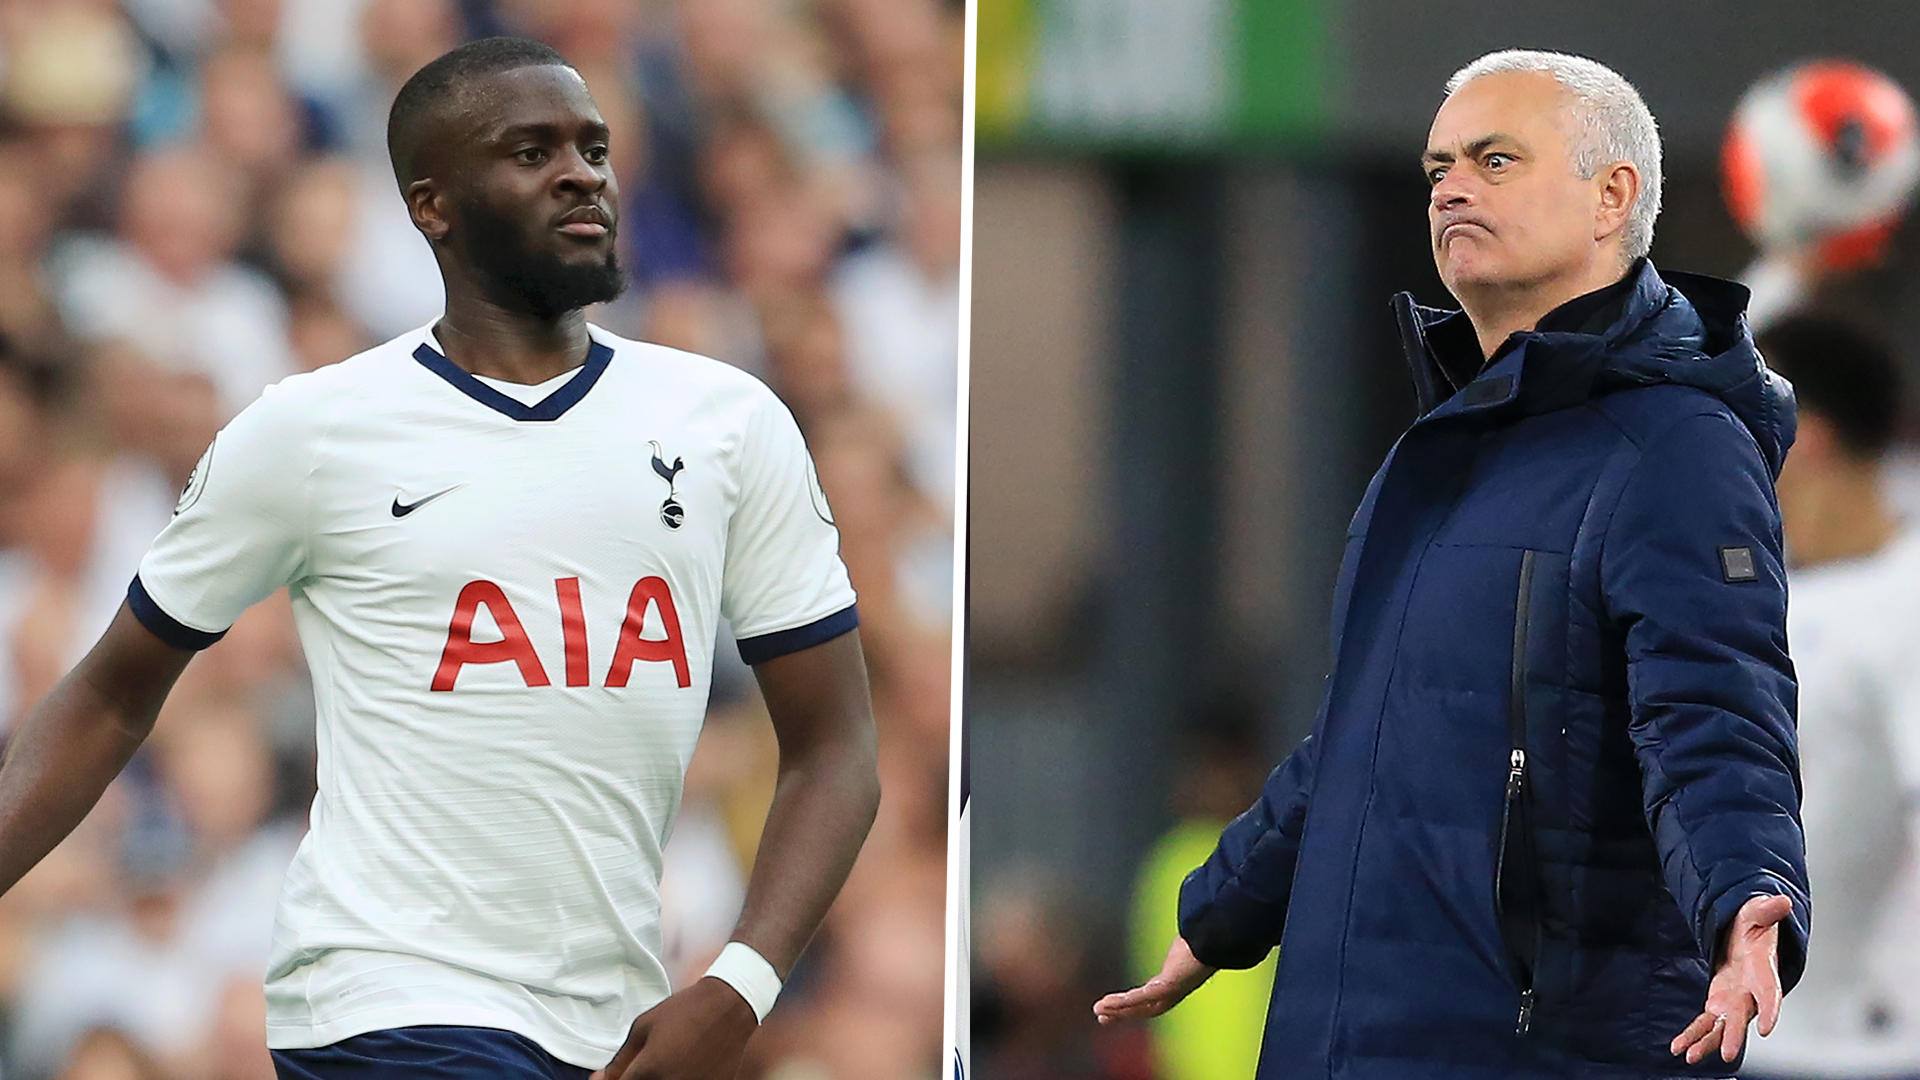 'Mourinho was right, Ndombele looks overweight and lacks consistency' - France legend Petit backs Spurs boss